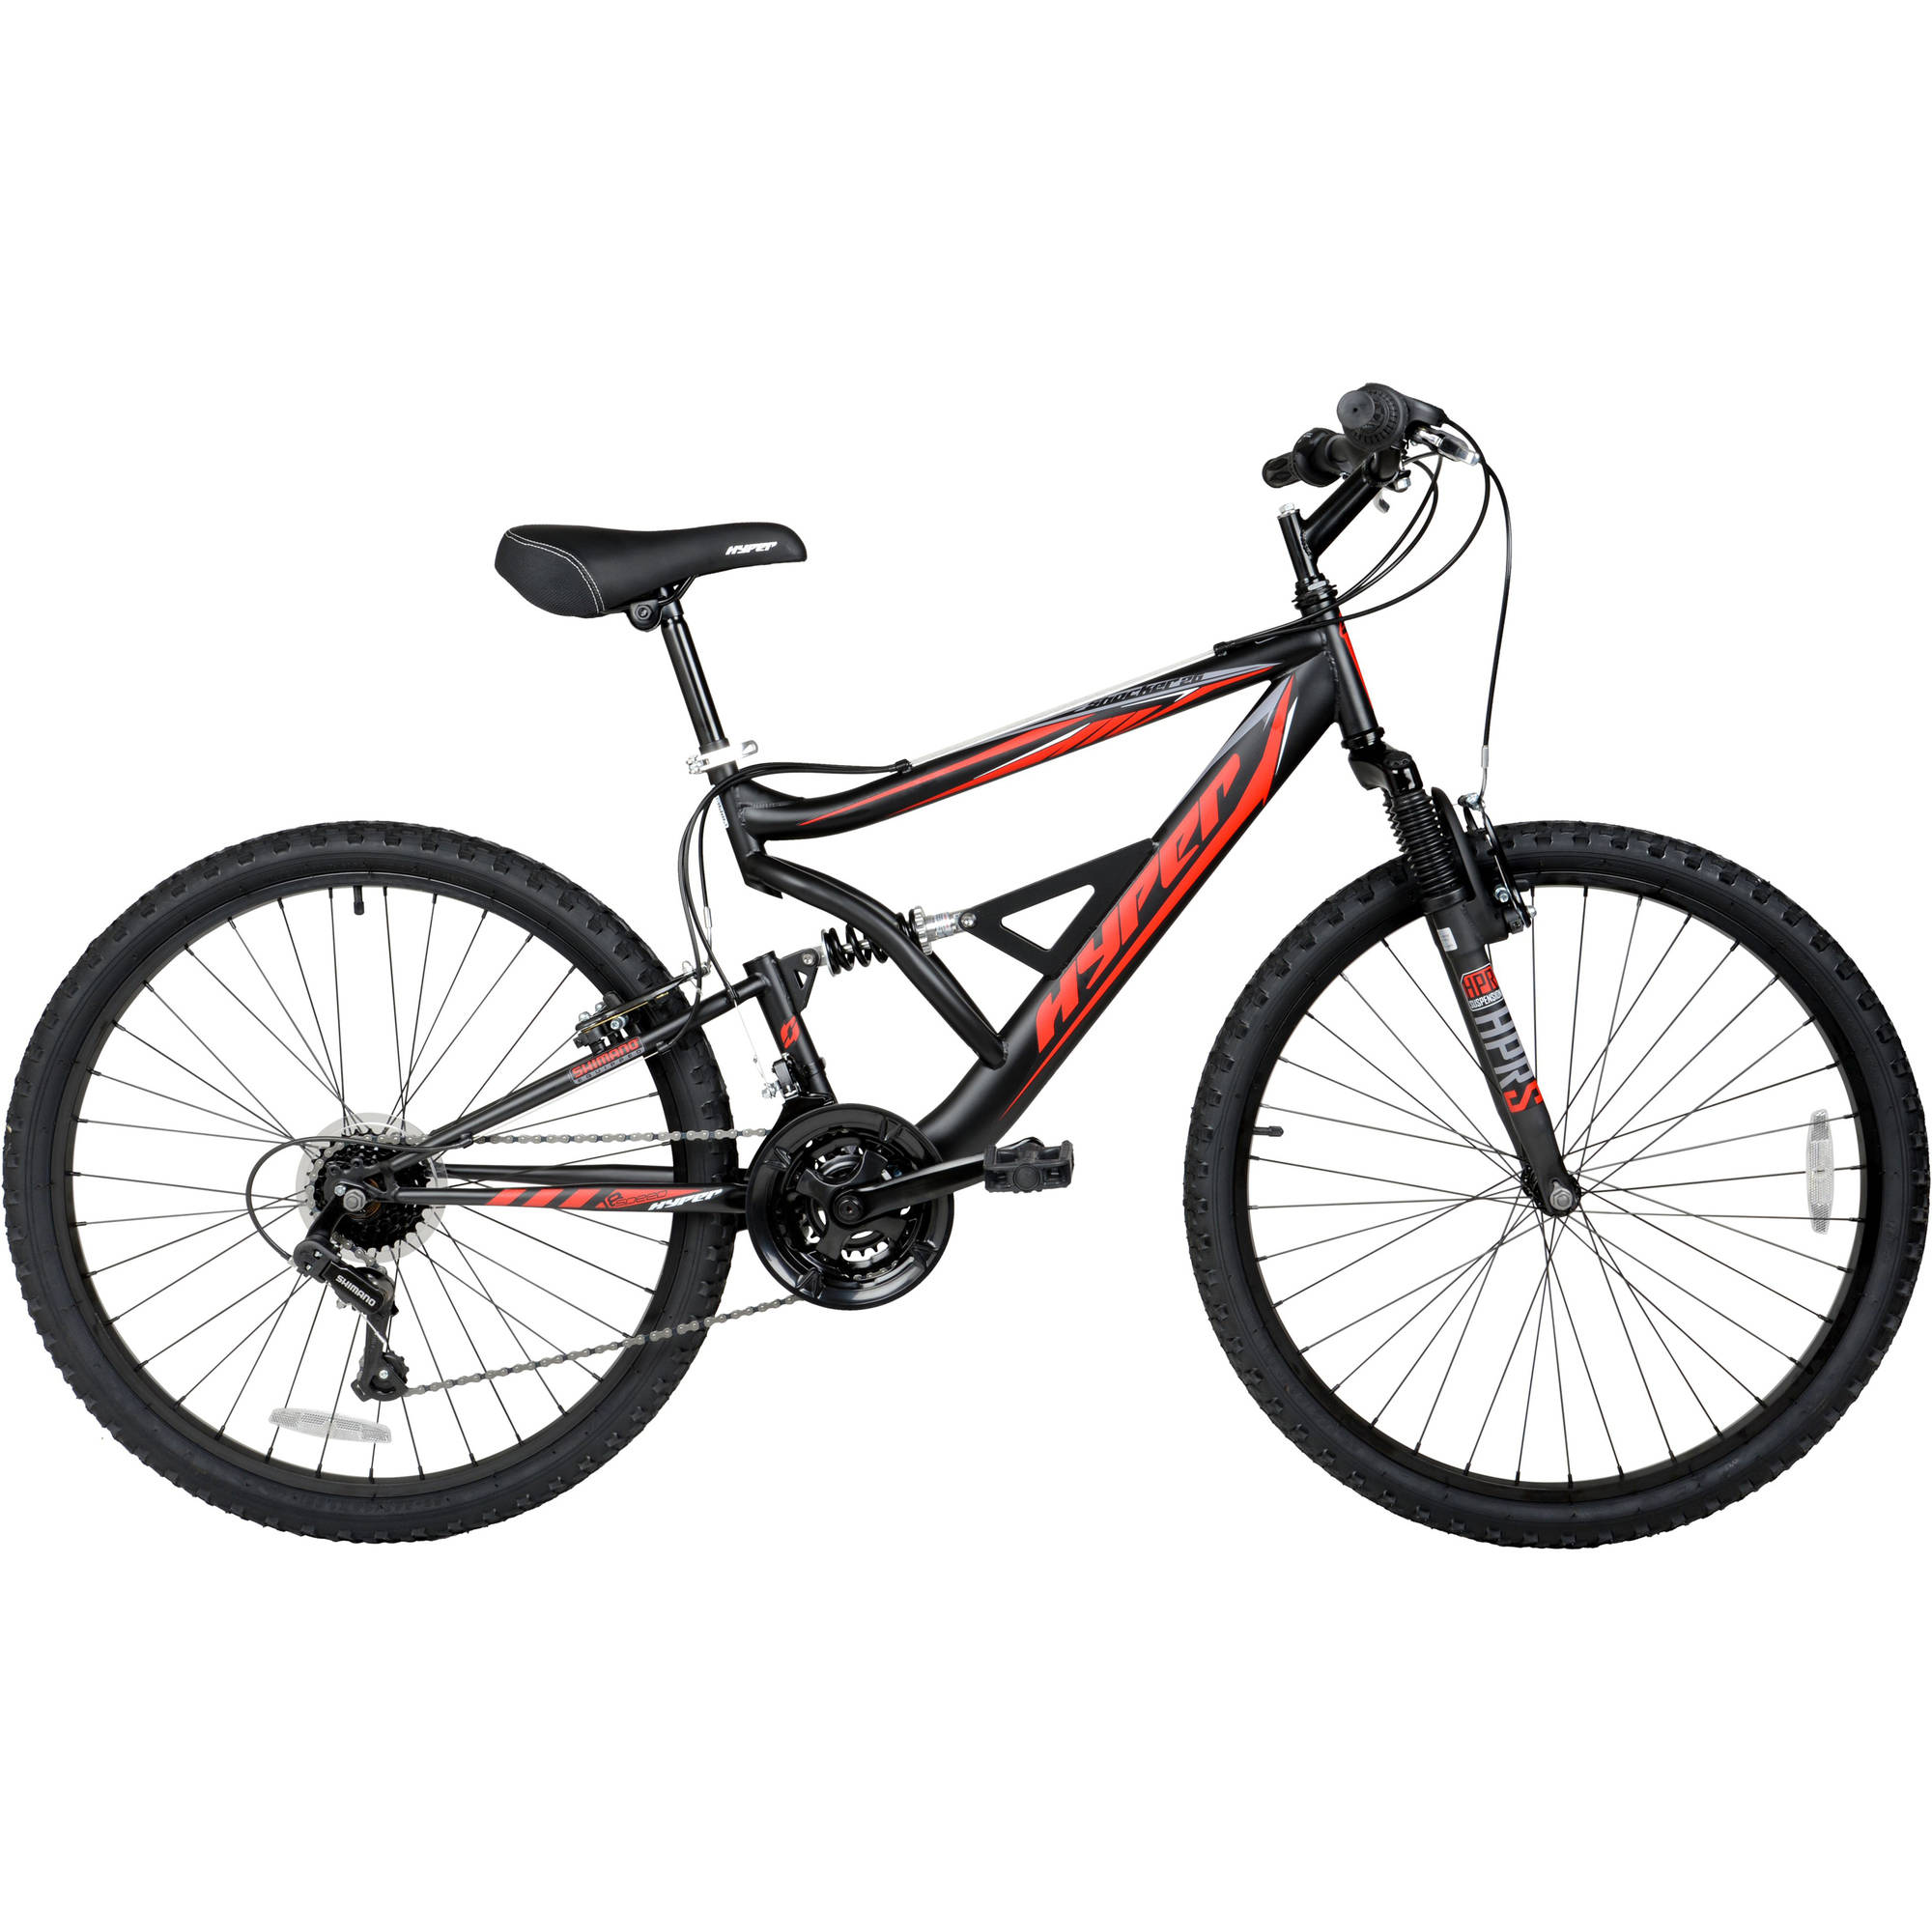 "26"" Hyper Shocker Men's Bike"